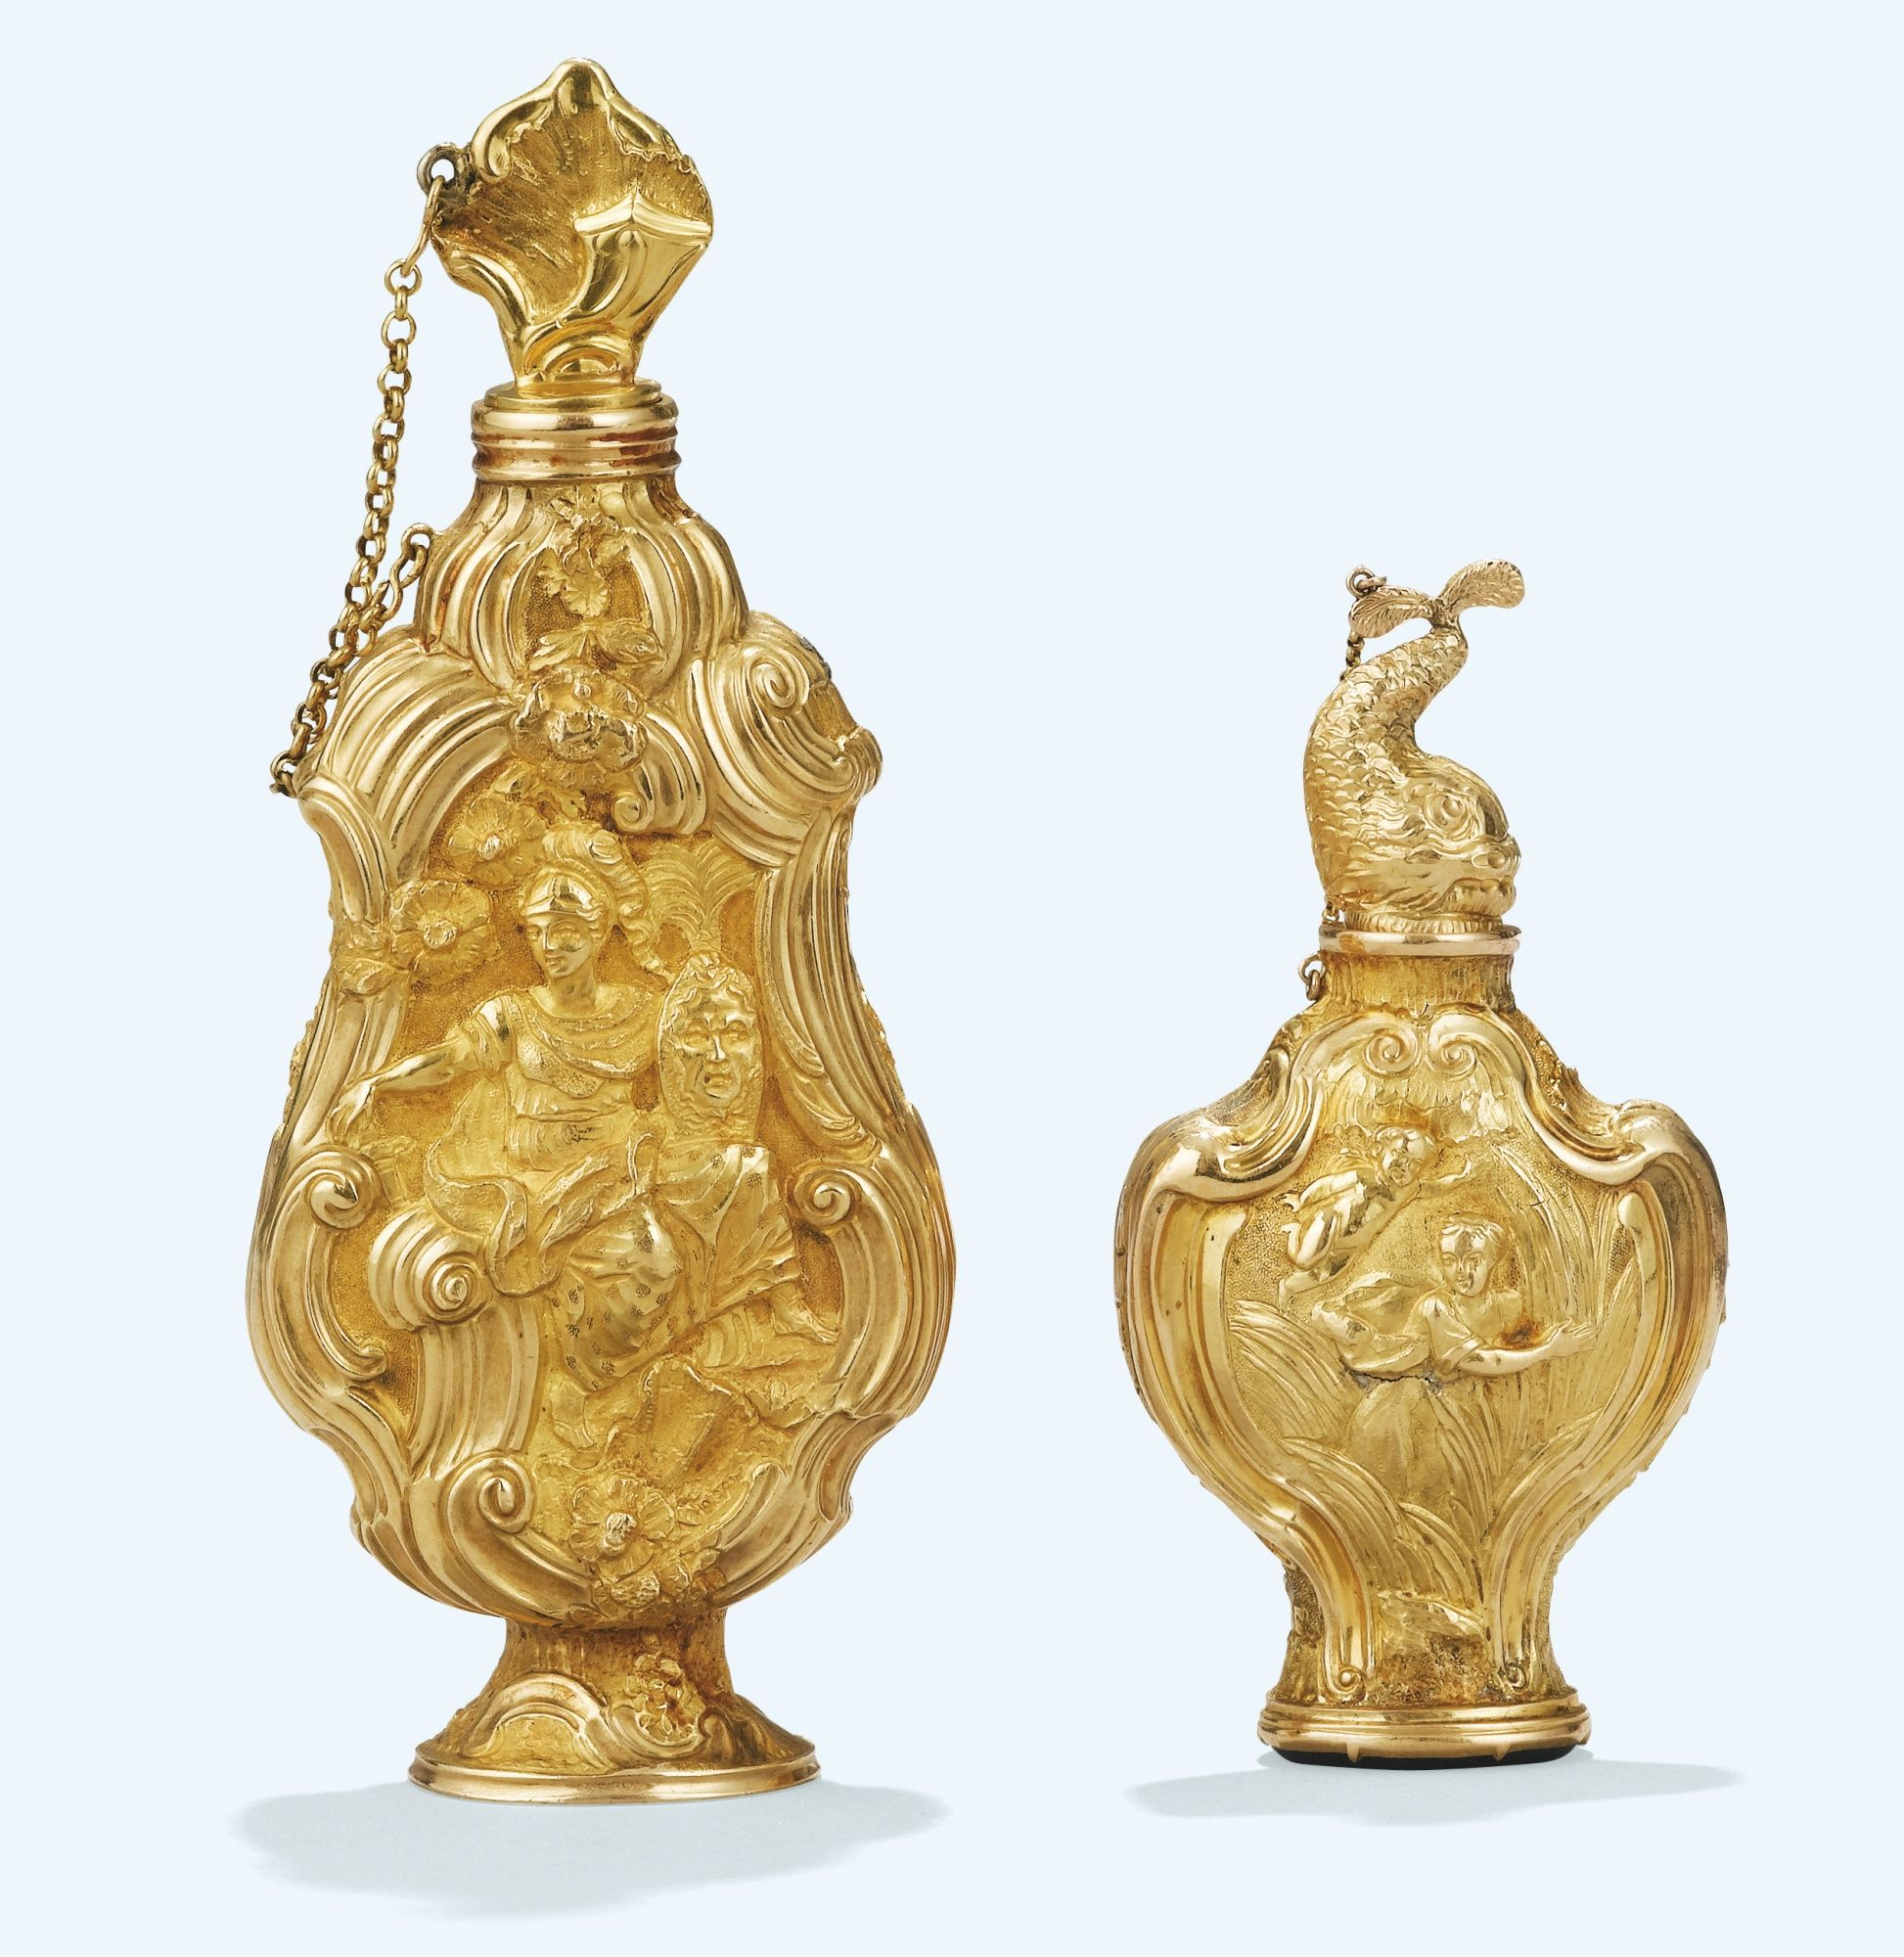 TWO GOLD SCENT BOTTLES, PROBABLY LONDON, CIRCA 1760